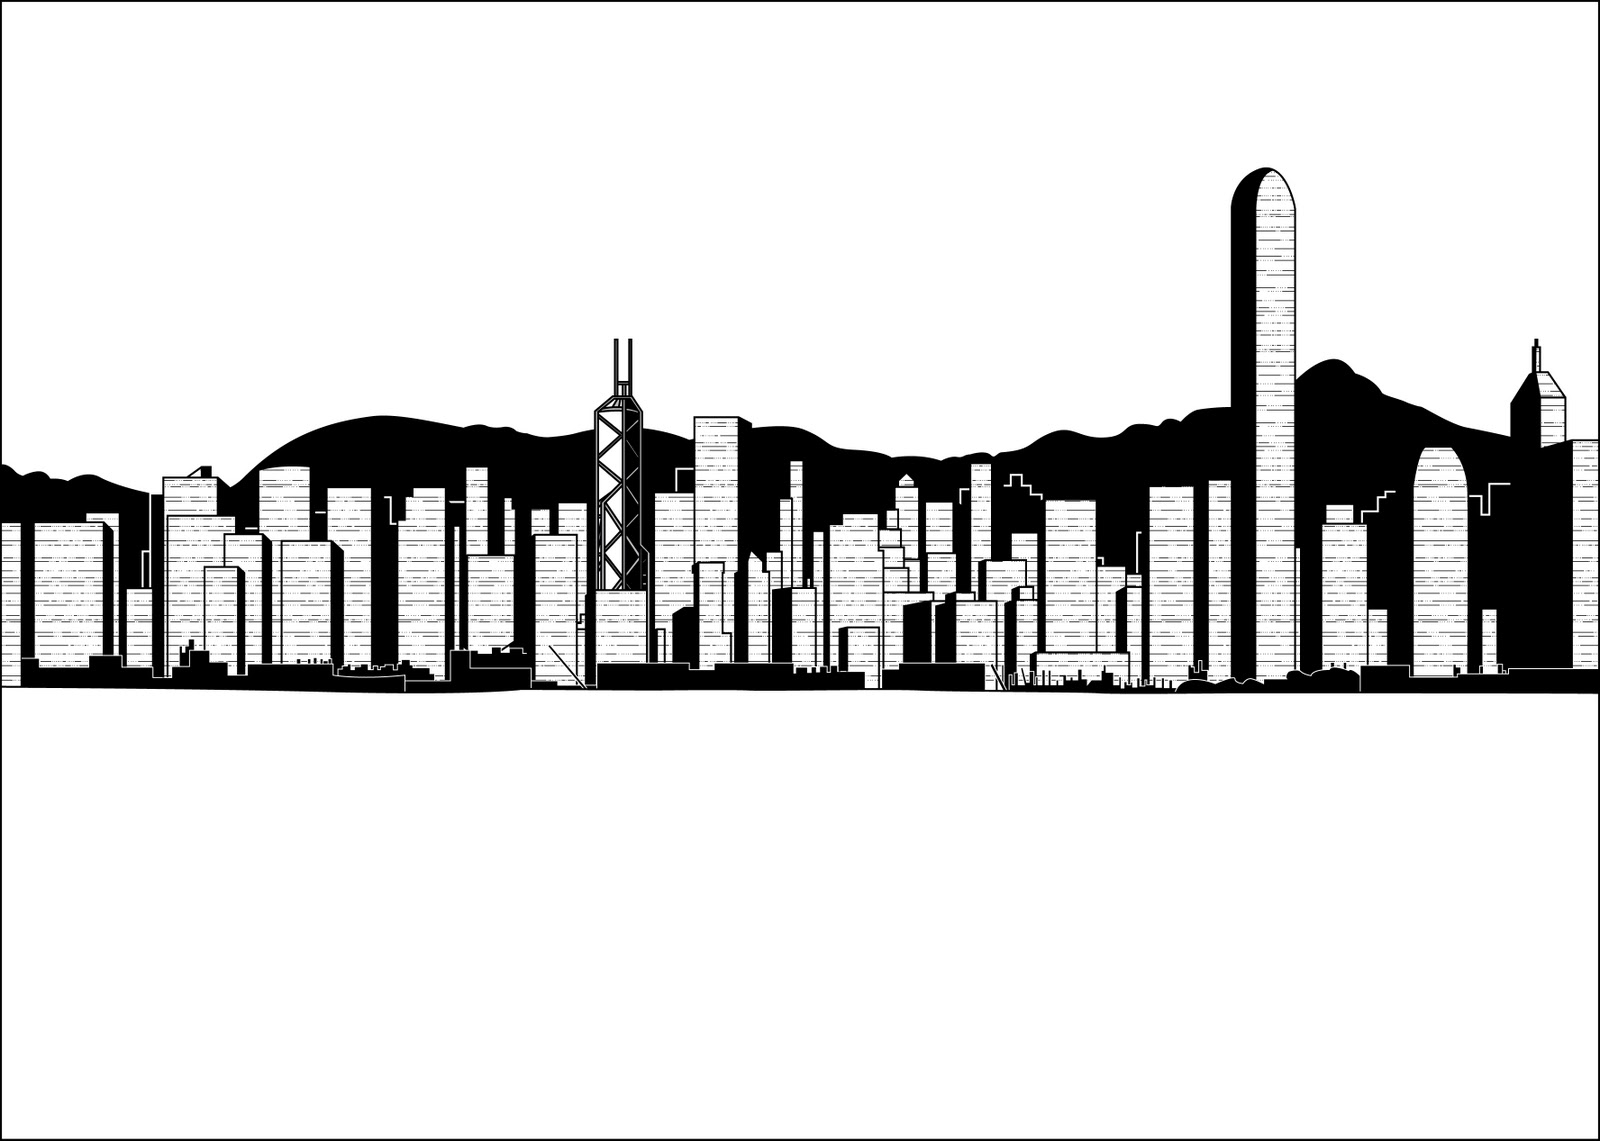 Poster design hong kong - Below Are The Development Stages That Have Led To My Final Poster Design Leading Up To The Final Poster Itself All Created In Adobe Illustrator